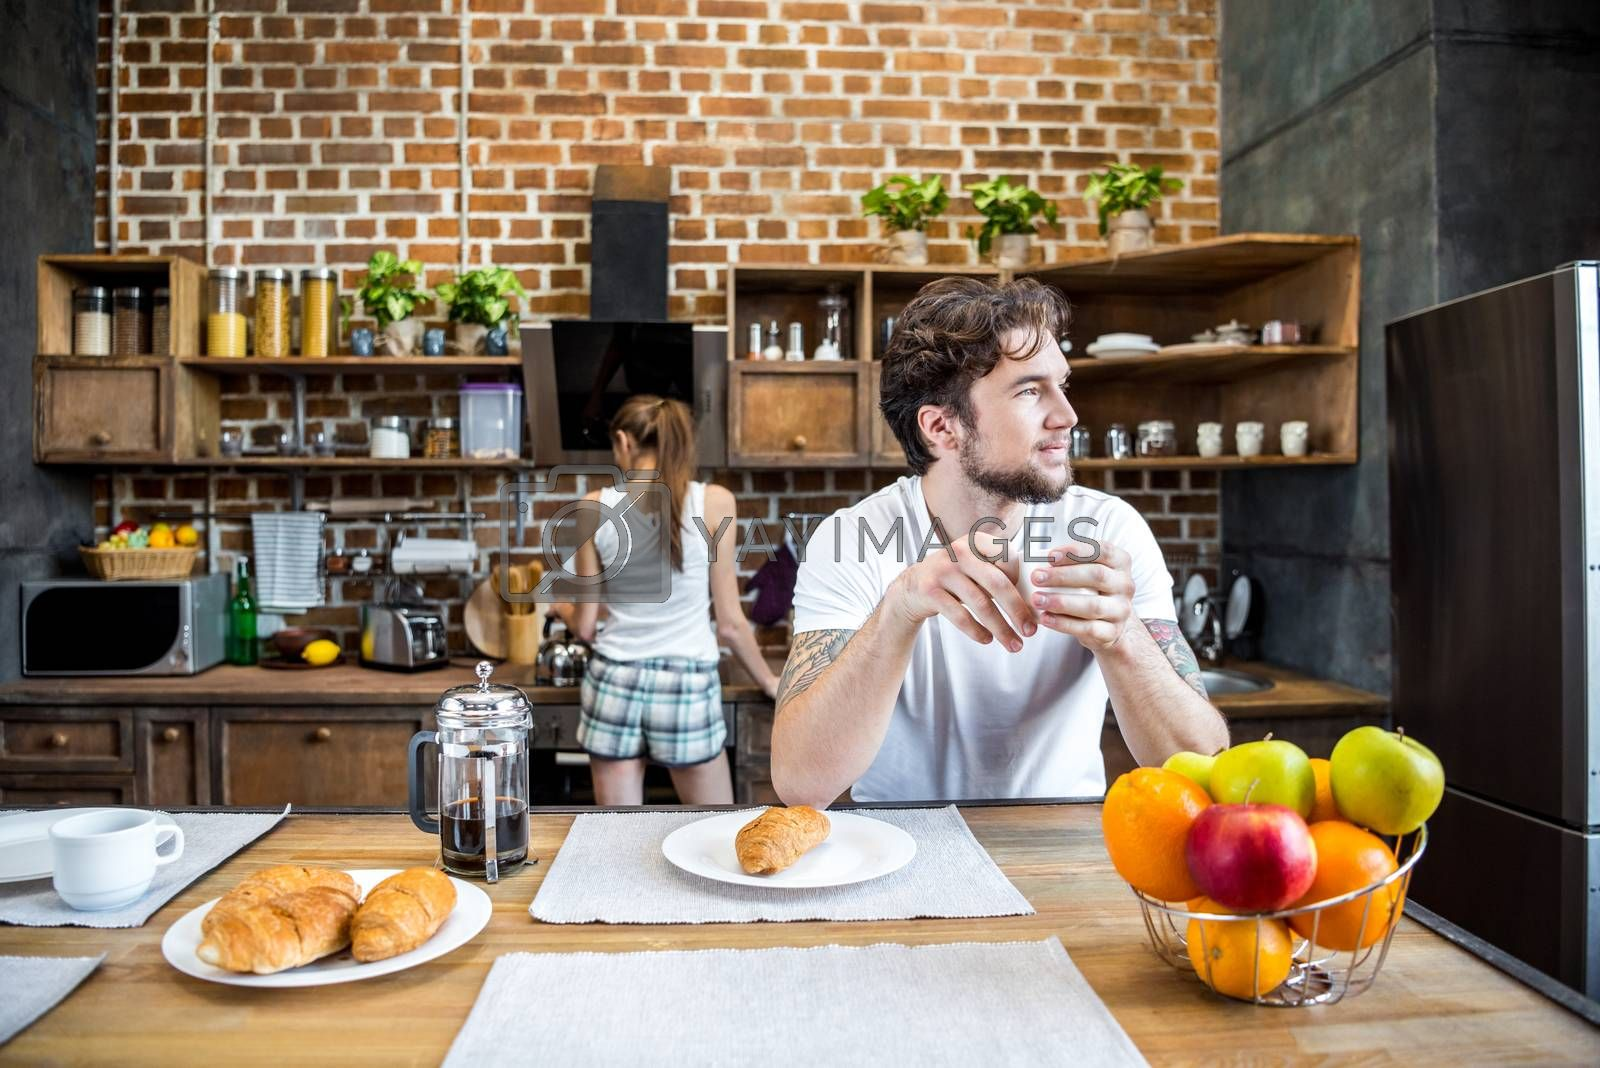 Smiling man in white t-shirt drinking coffee and looking away in kitchen